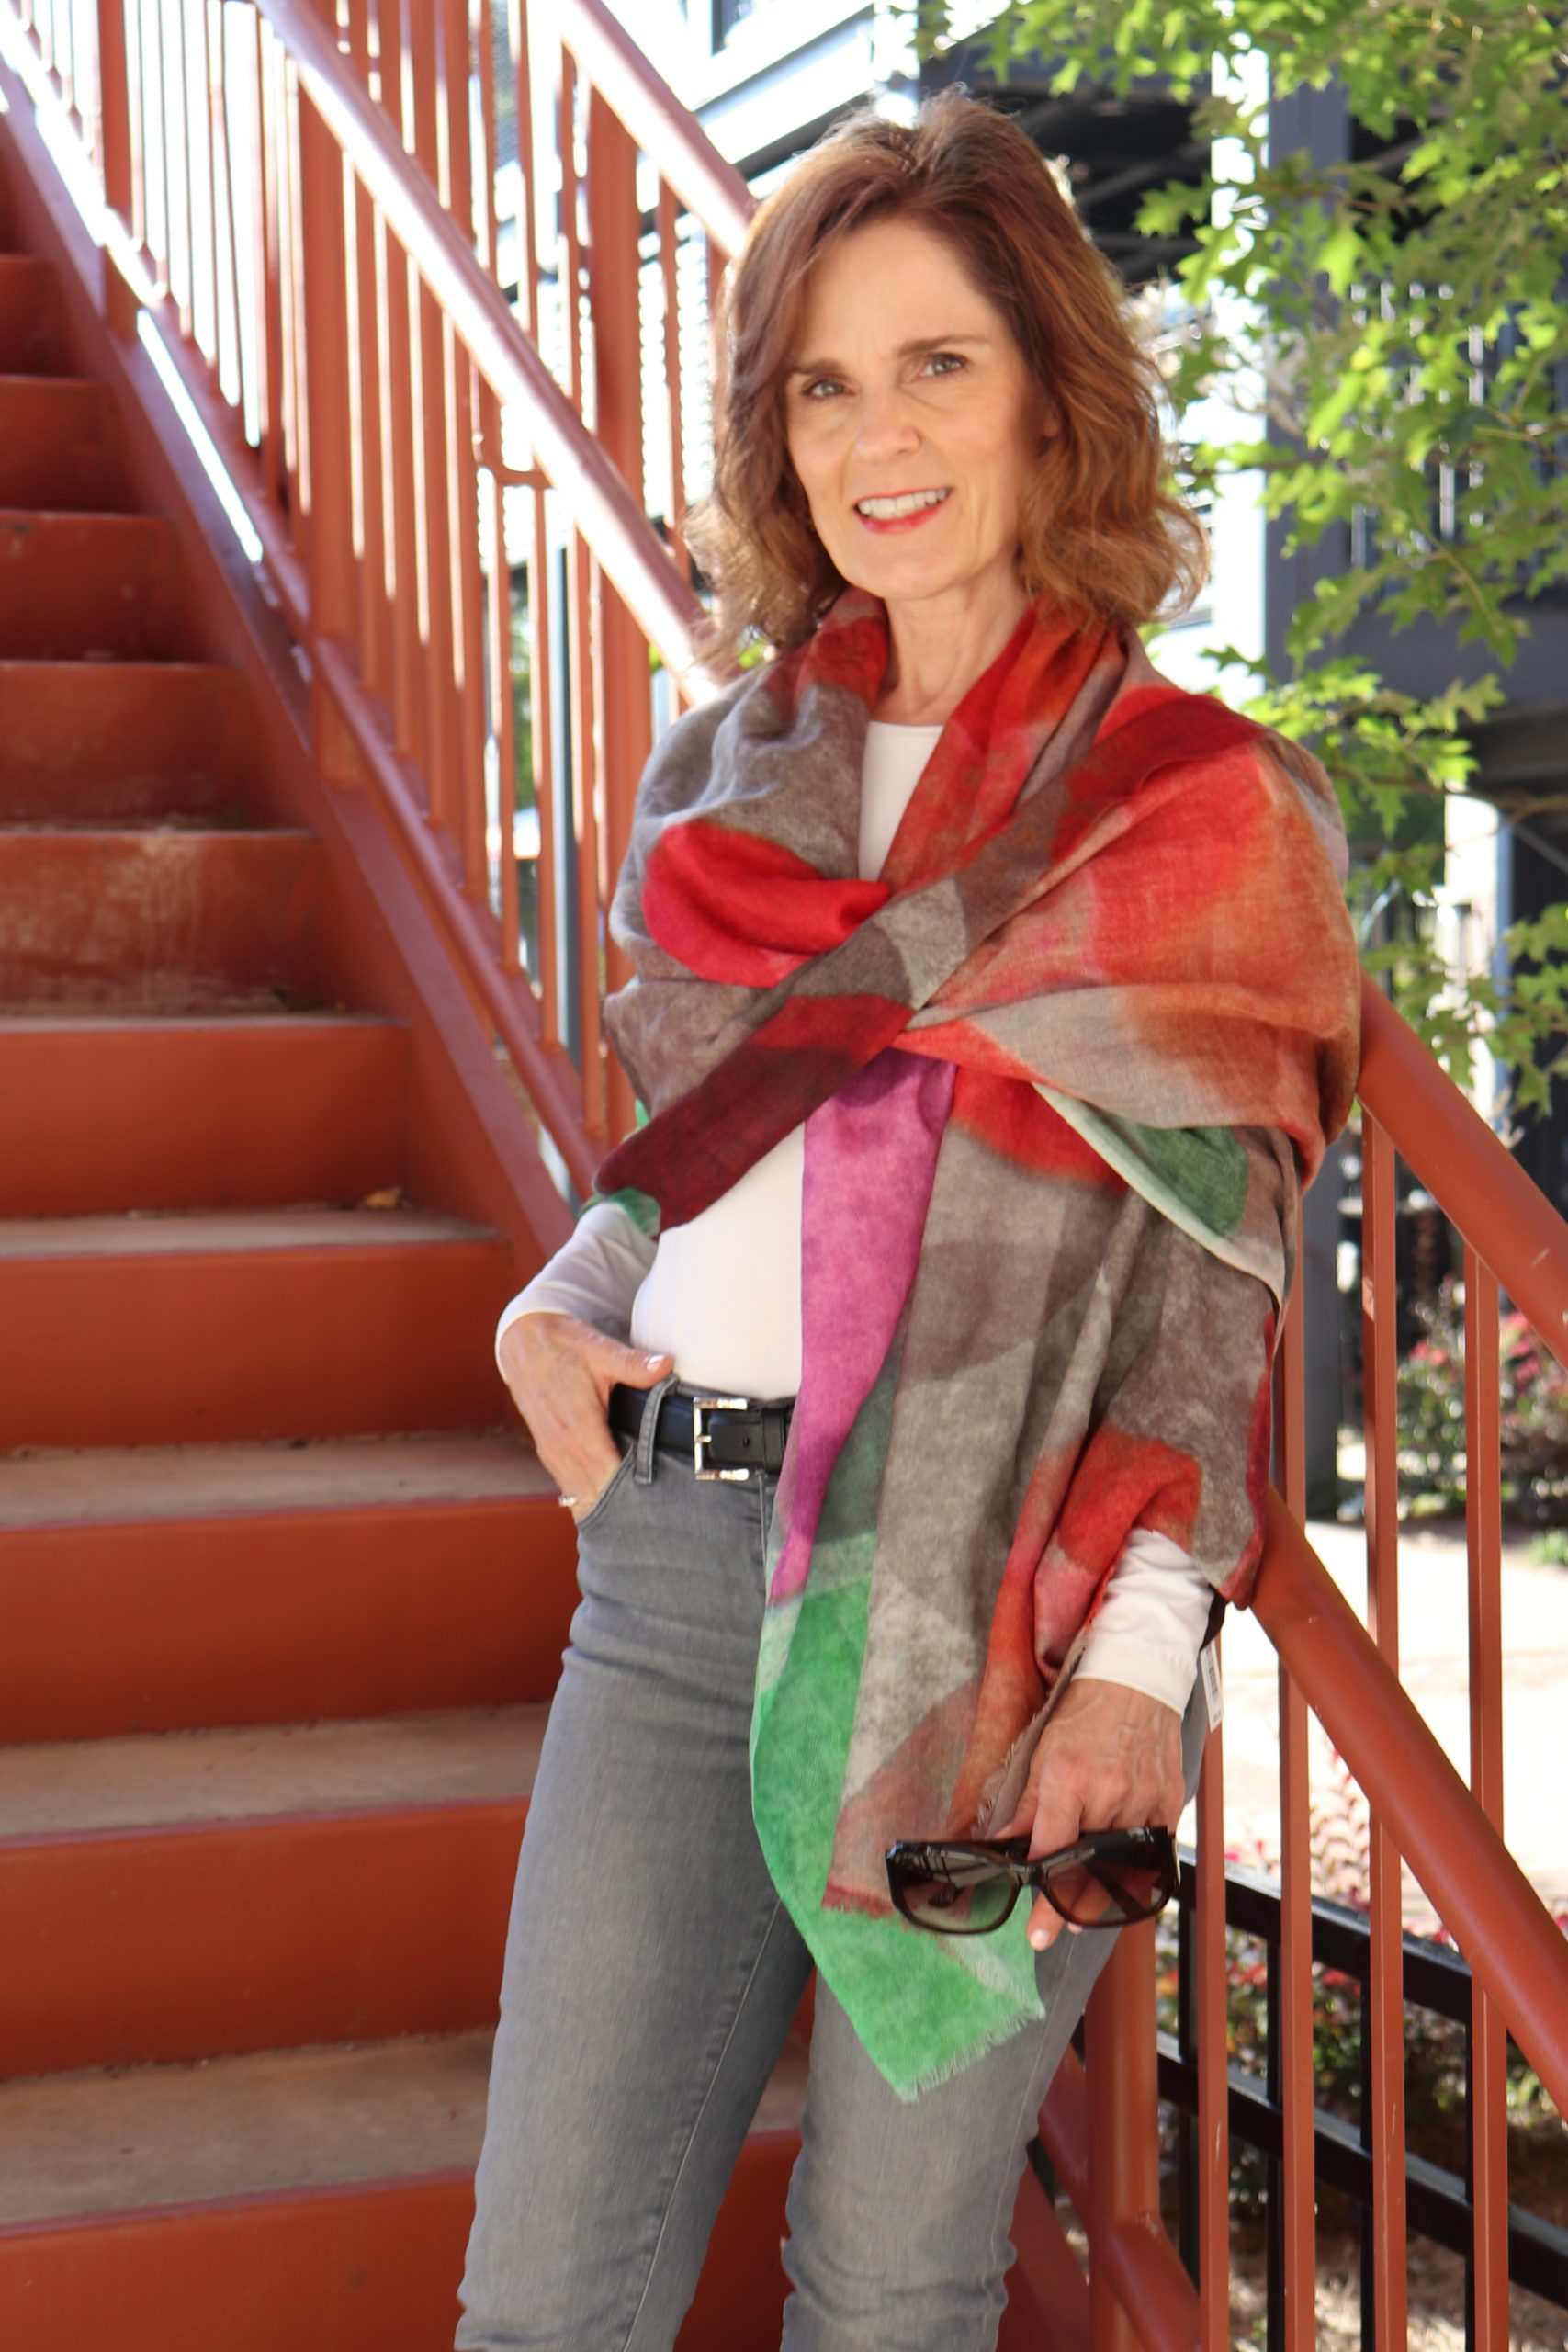 woman over 50 standing on an orange metal staircase leaning against the railing wrapped up for fall in a scarf with fall colors over a white long sleeve tee with jeans